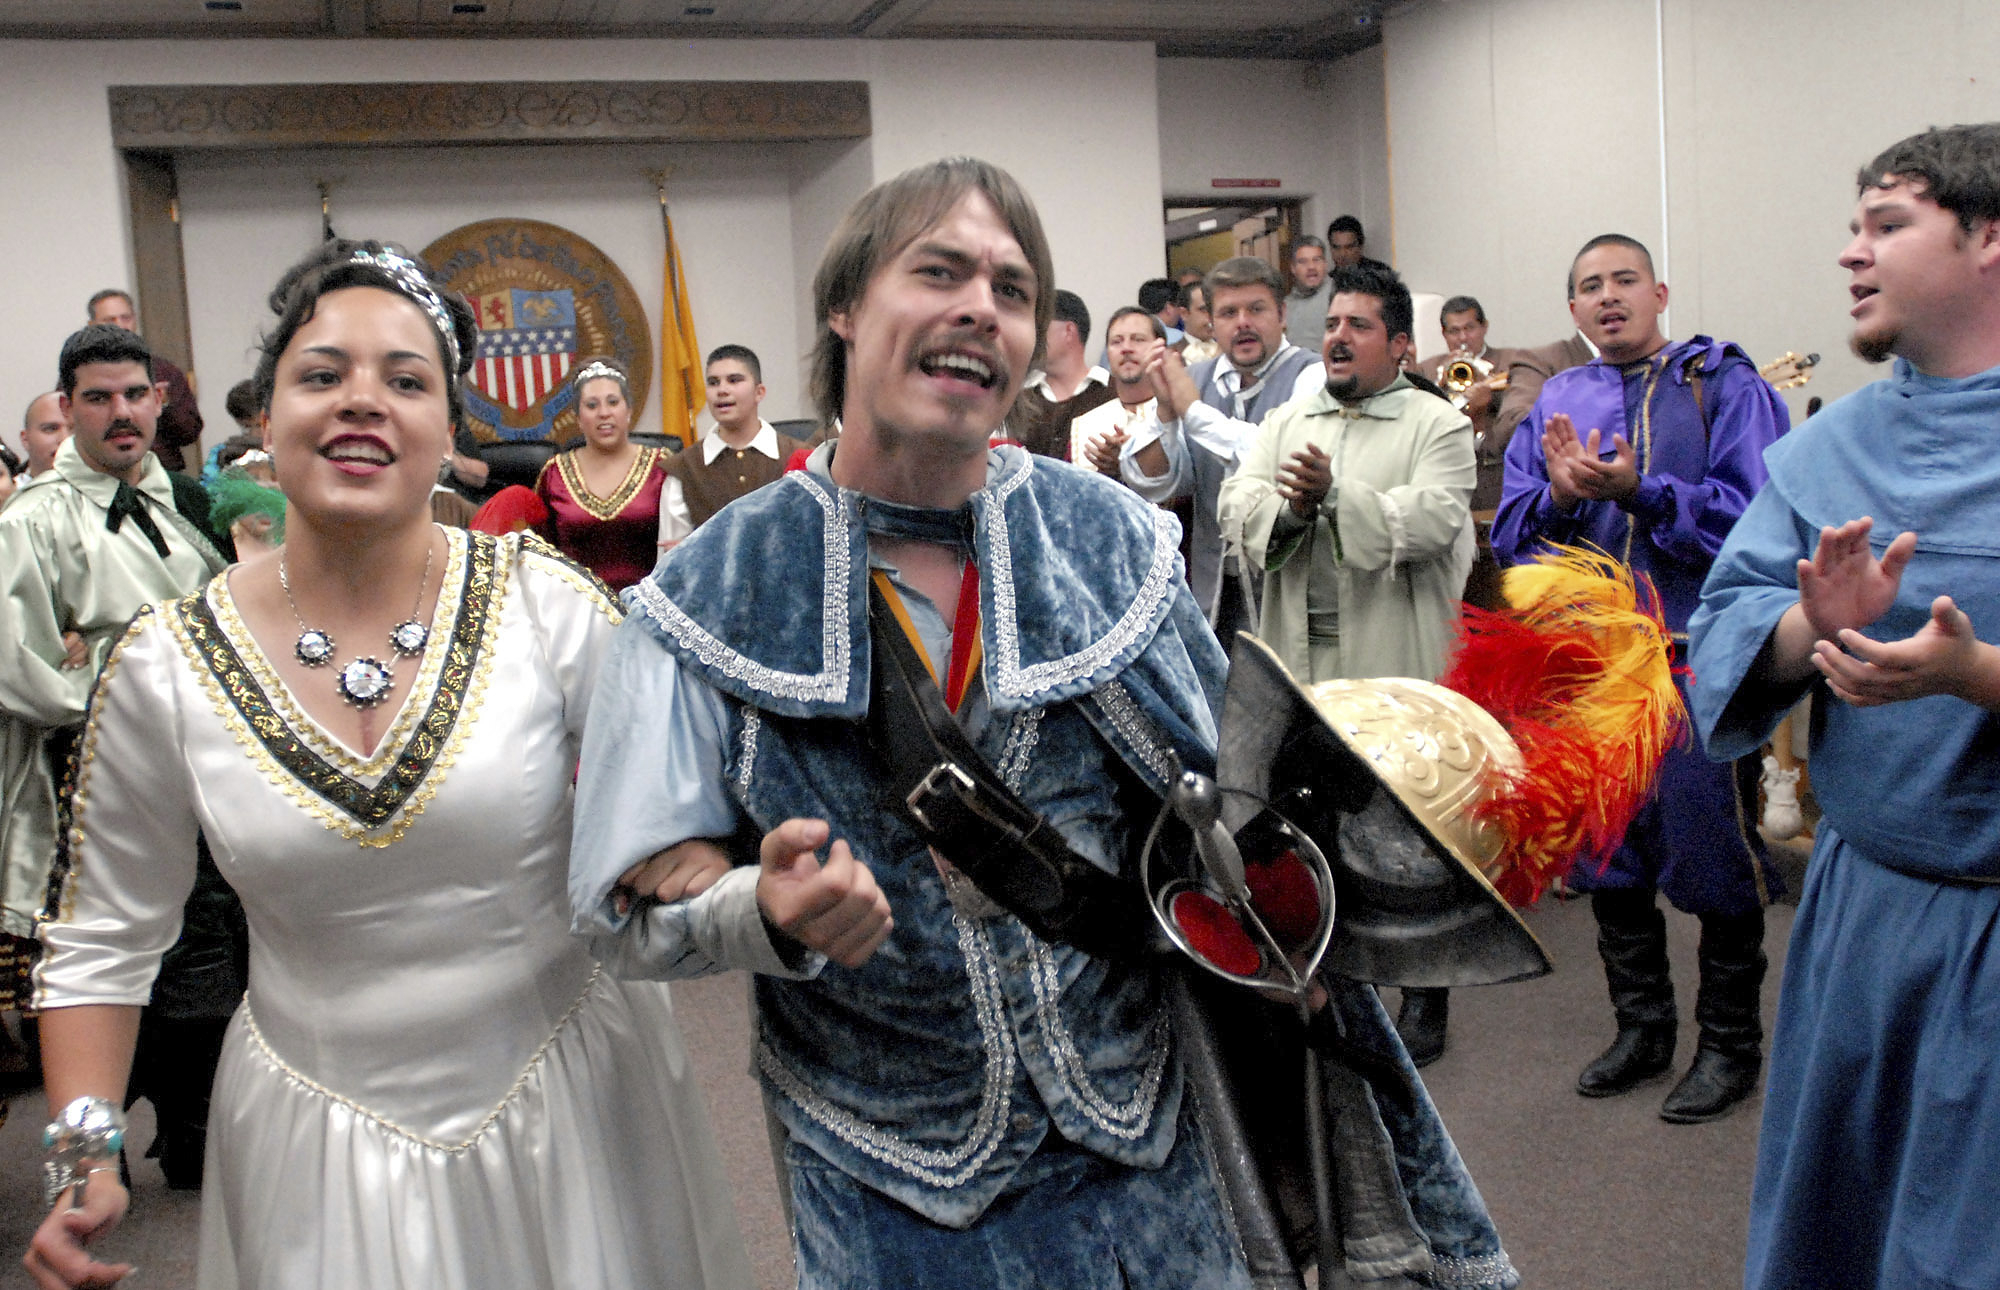 In this Sept. 5, 2006, file photo, Jessica Lucero, left, dressed as the Fiesta Queen, and Jaime Dean, right, dressed as 17th Century Spanish conquistador Don Diego de Vargas, dance and sing at Santa Fe City Hall in Santa Fe, N.M. New Mexico has retained its title as the nation's most heavily Latino state, with 47.7% of respondents to the 2020 census identifying ancestry linked to Latin America and other Spanish-speaking areas. The Census Bureau on Thursday, Aug. 12, 2021 released new demographic details culled from the census. (AP Photo/Jeff Geissler, File)